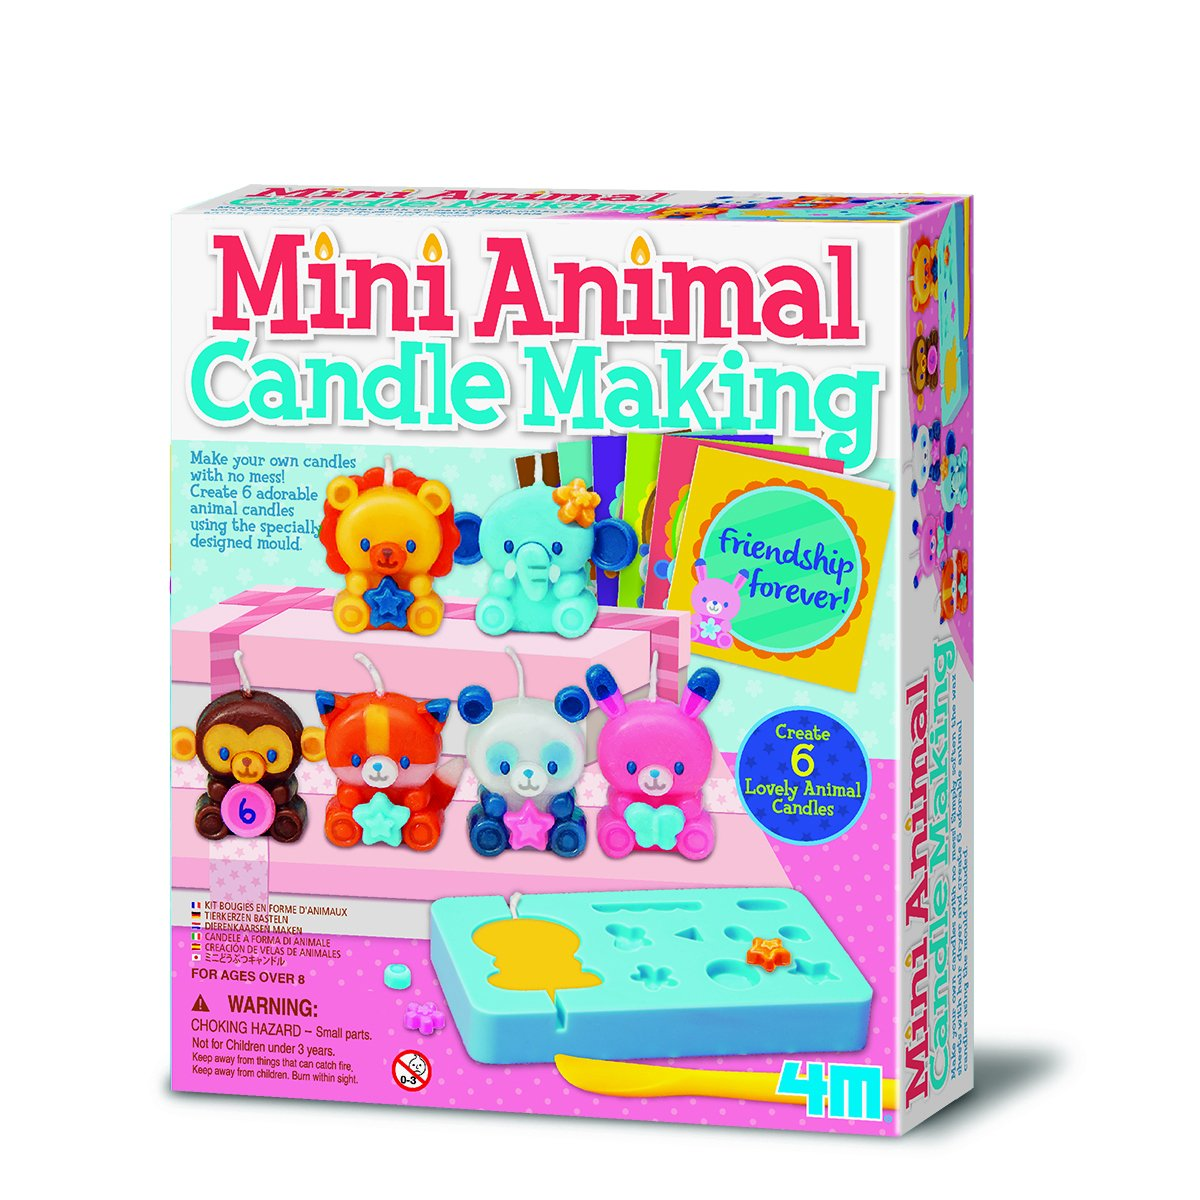 Top Selling 4M Mini Animal Candle Making Kit - Arts & crafts activity for children suitable age 4+ Ideal Birthday Present Kenzies Gifts